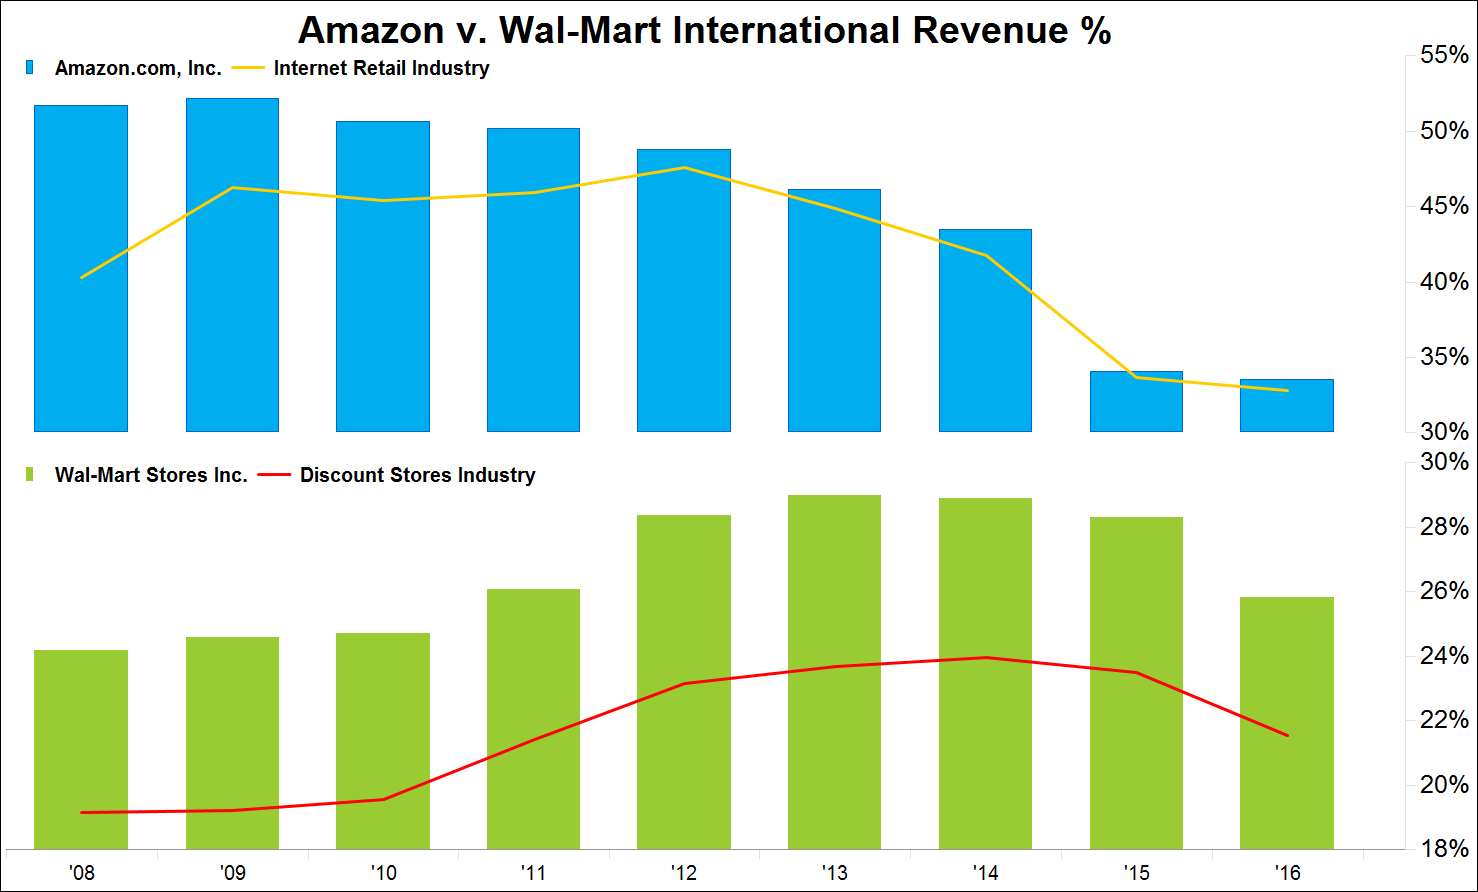 Interestingly, Amazon's global revenues have declined 18.2 percentage points since 2008.png